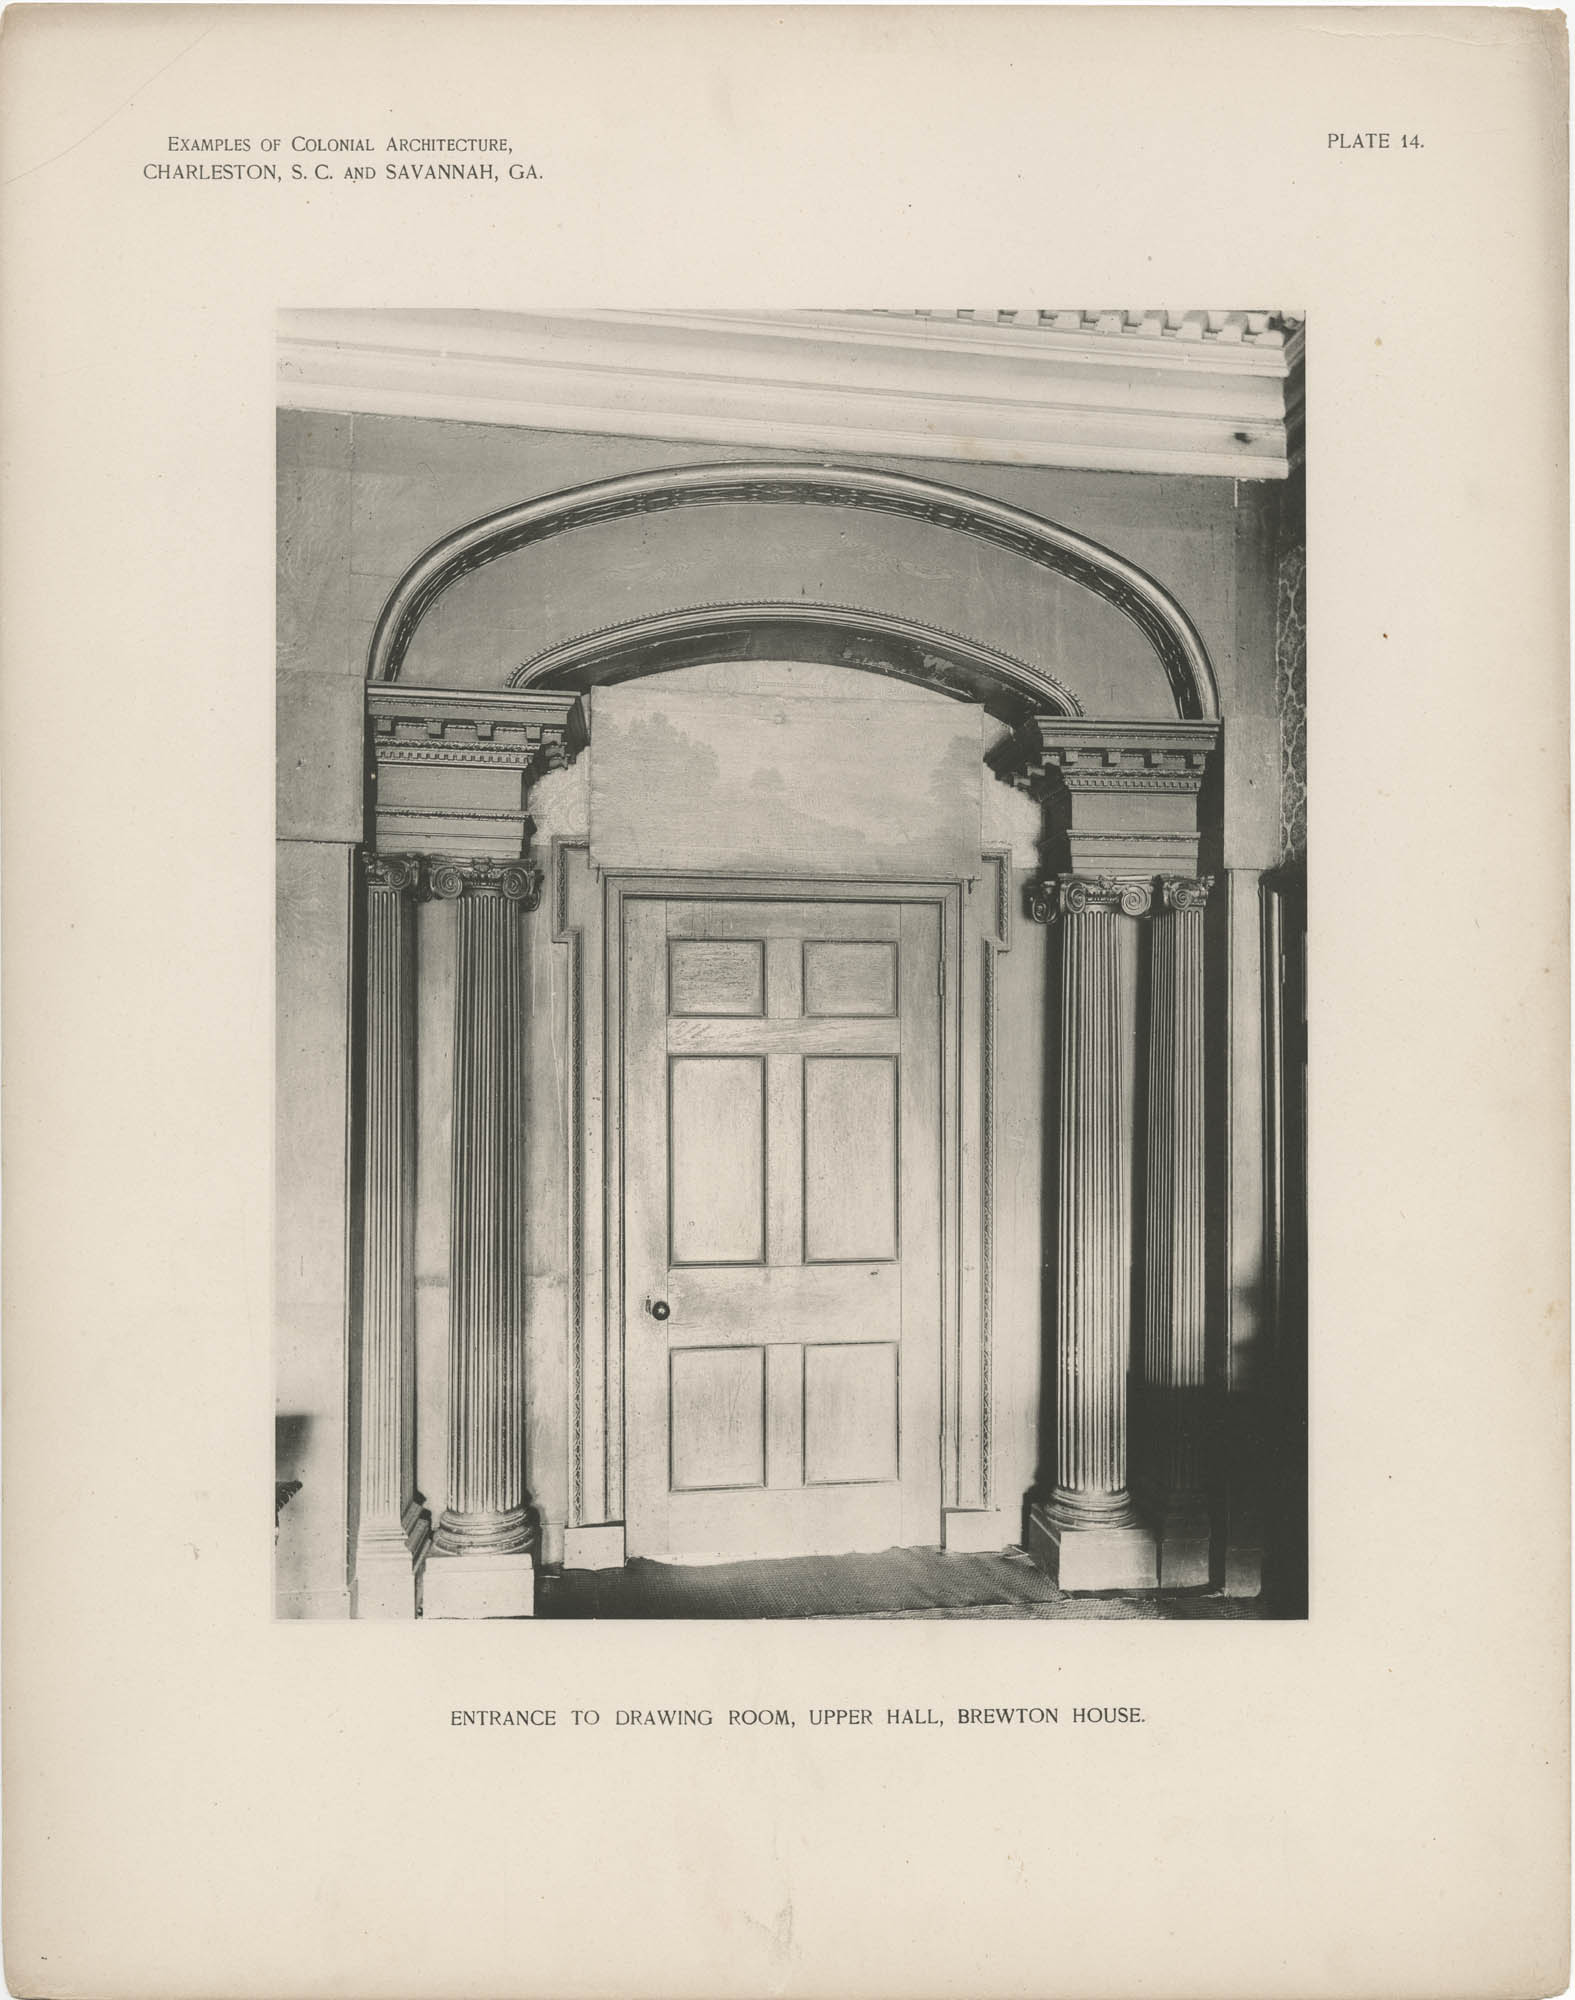 Plate 14: Entrance to Drawing Room, Upper Hall, Brewton House